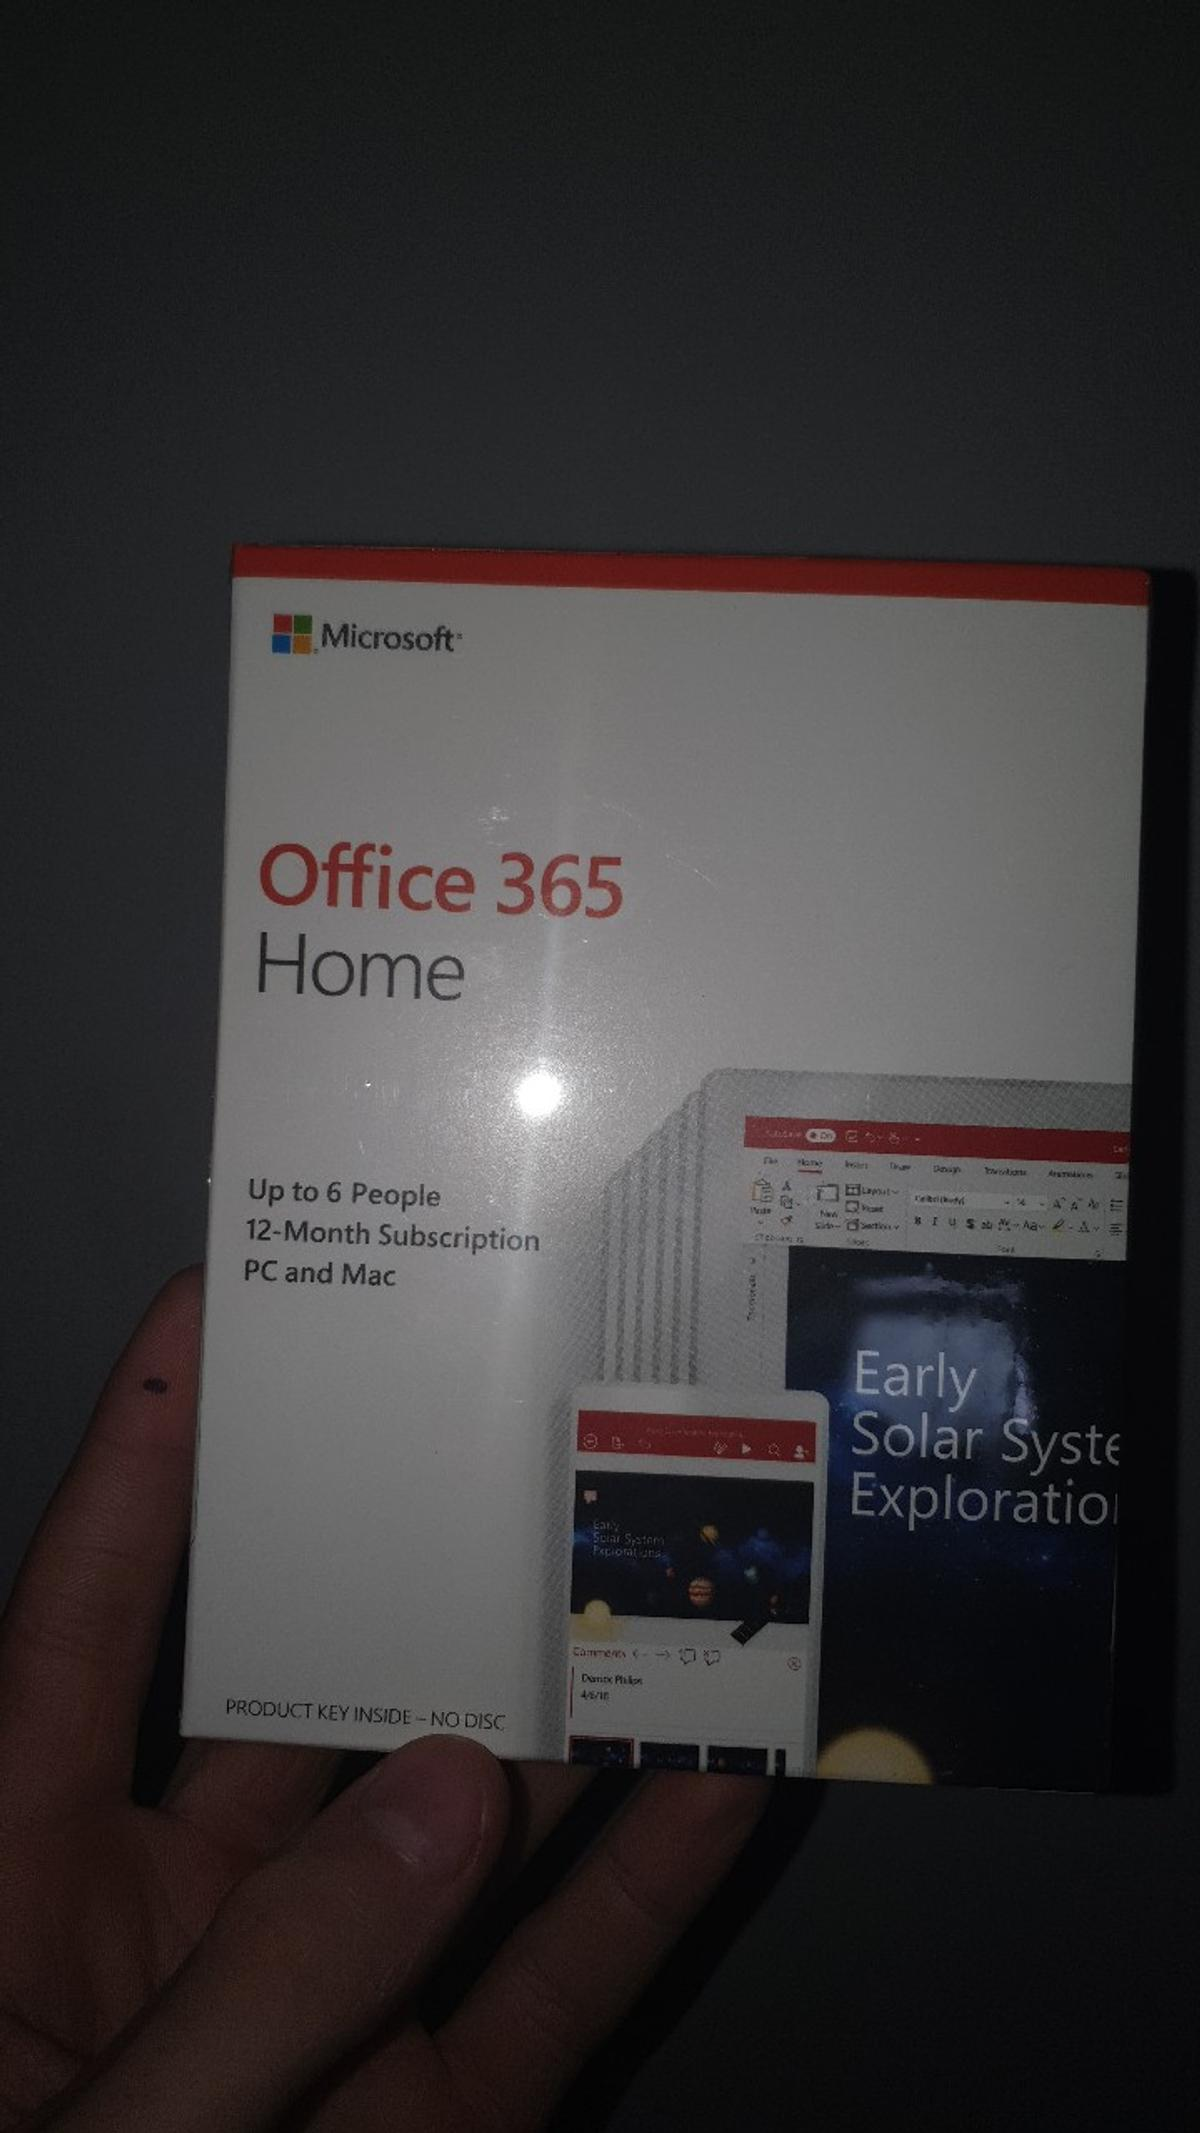 brand new came bundled with laptop. selling cheaper than Microsoft website